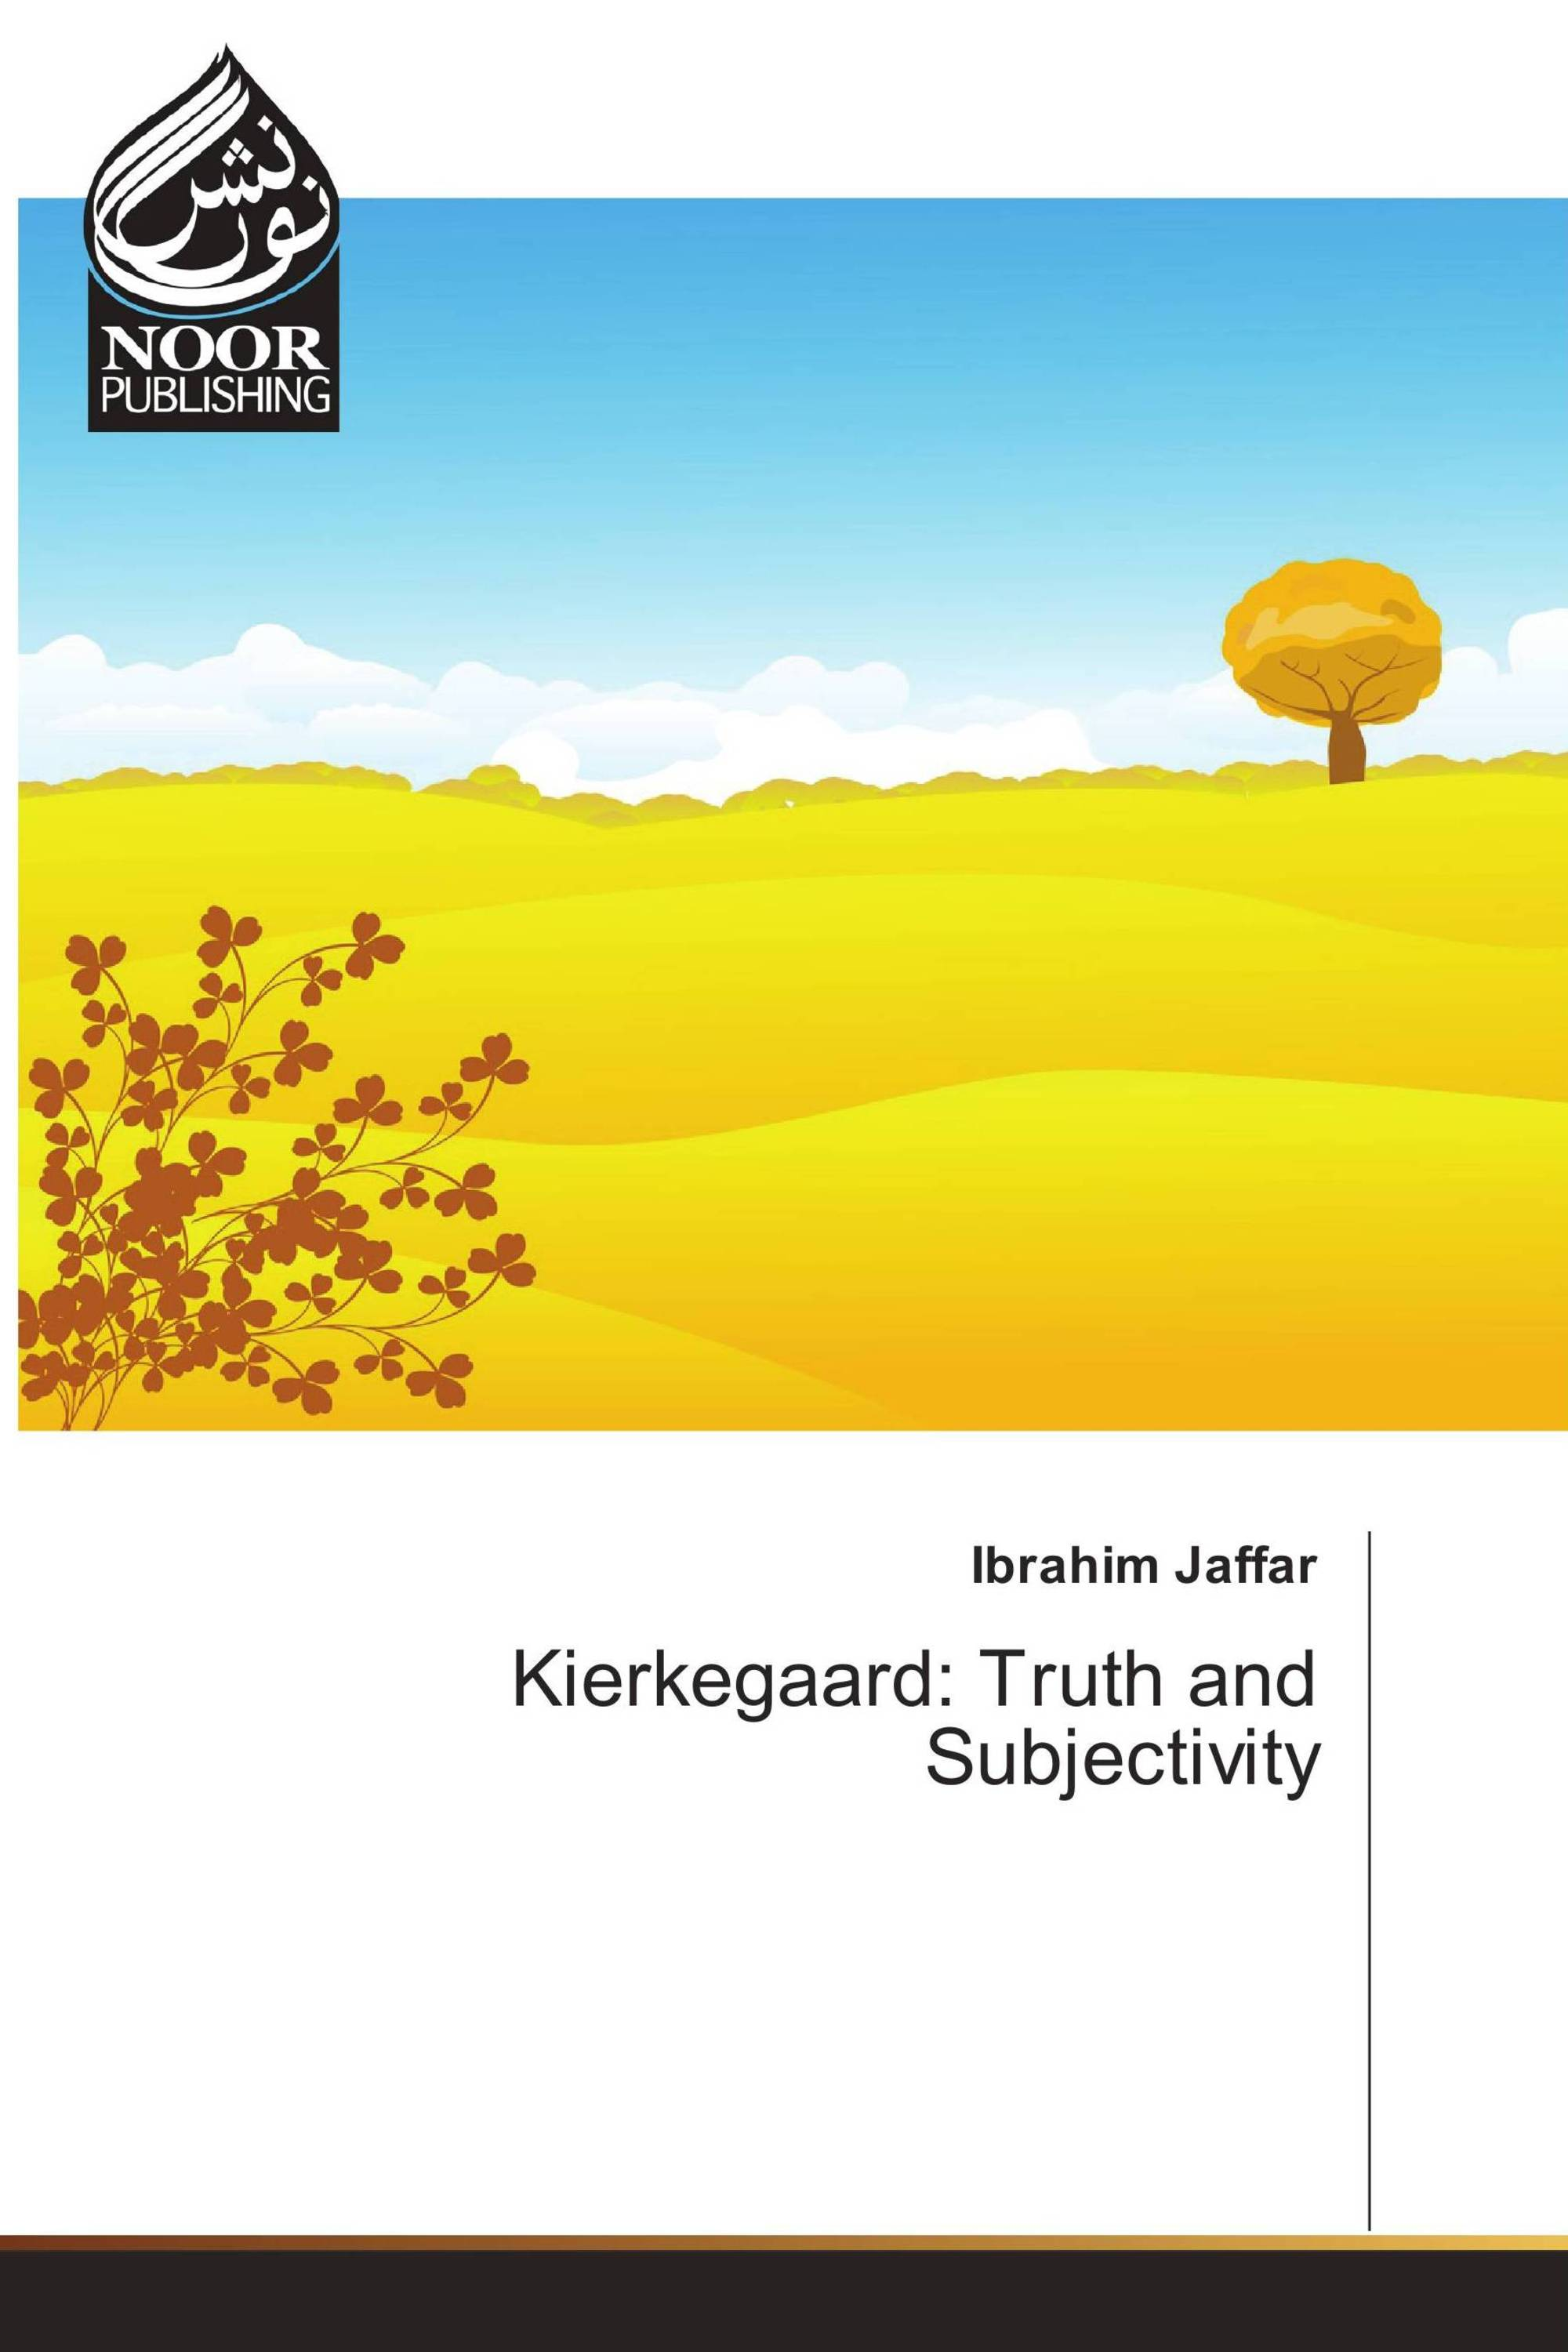 truth is subjectivity kierkegaard essay And whether truth is subjective or the judgment has transcendental truth kierkegaard (1813 1873 unpublished essay, on truth and lies in a.